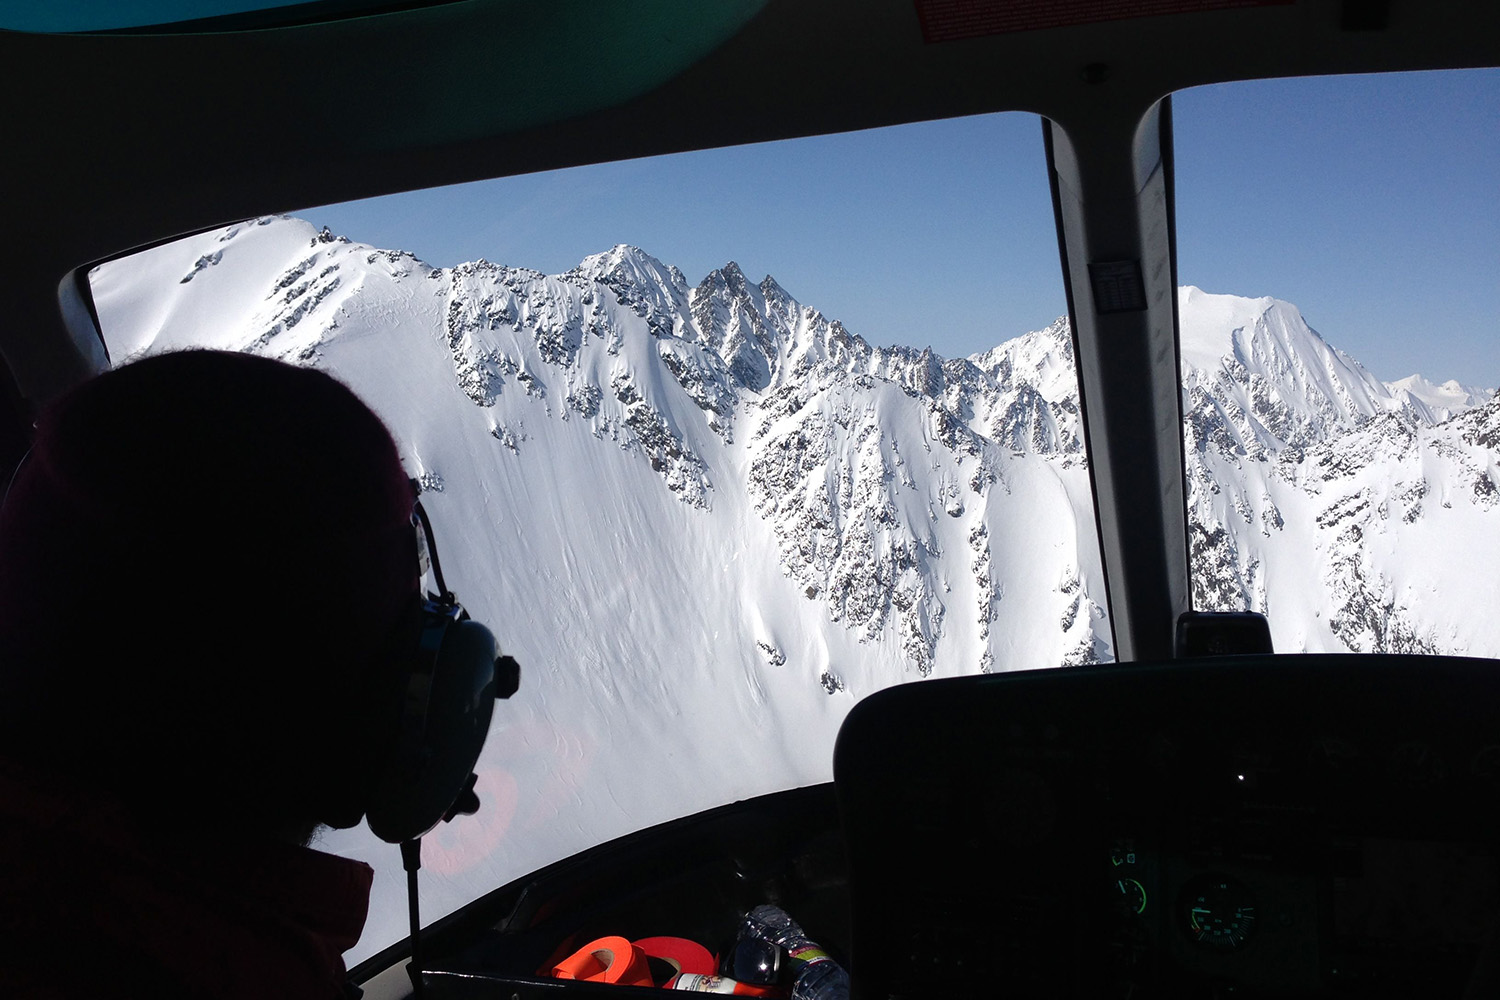 Heli Skiing Information (Choppers)